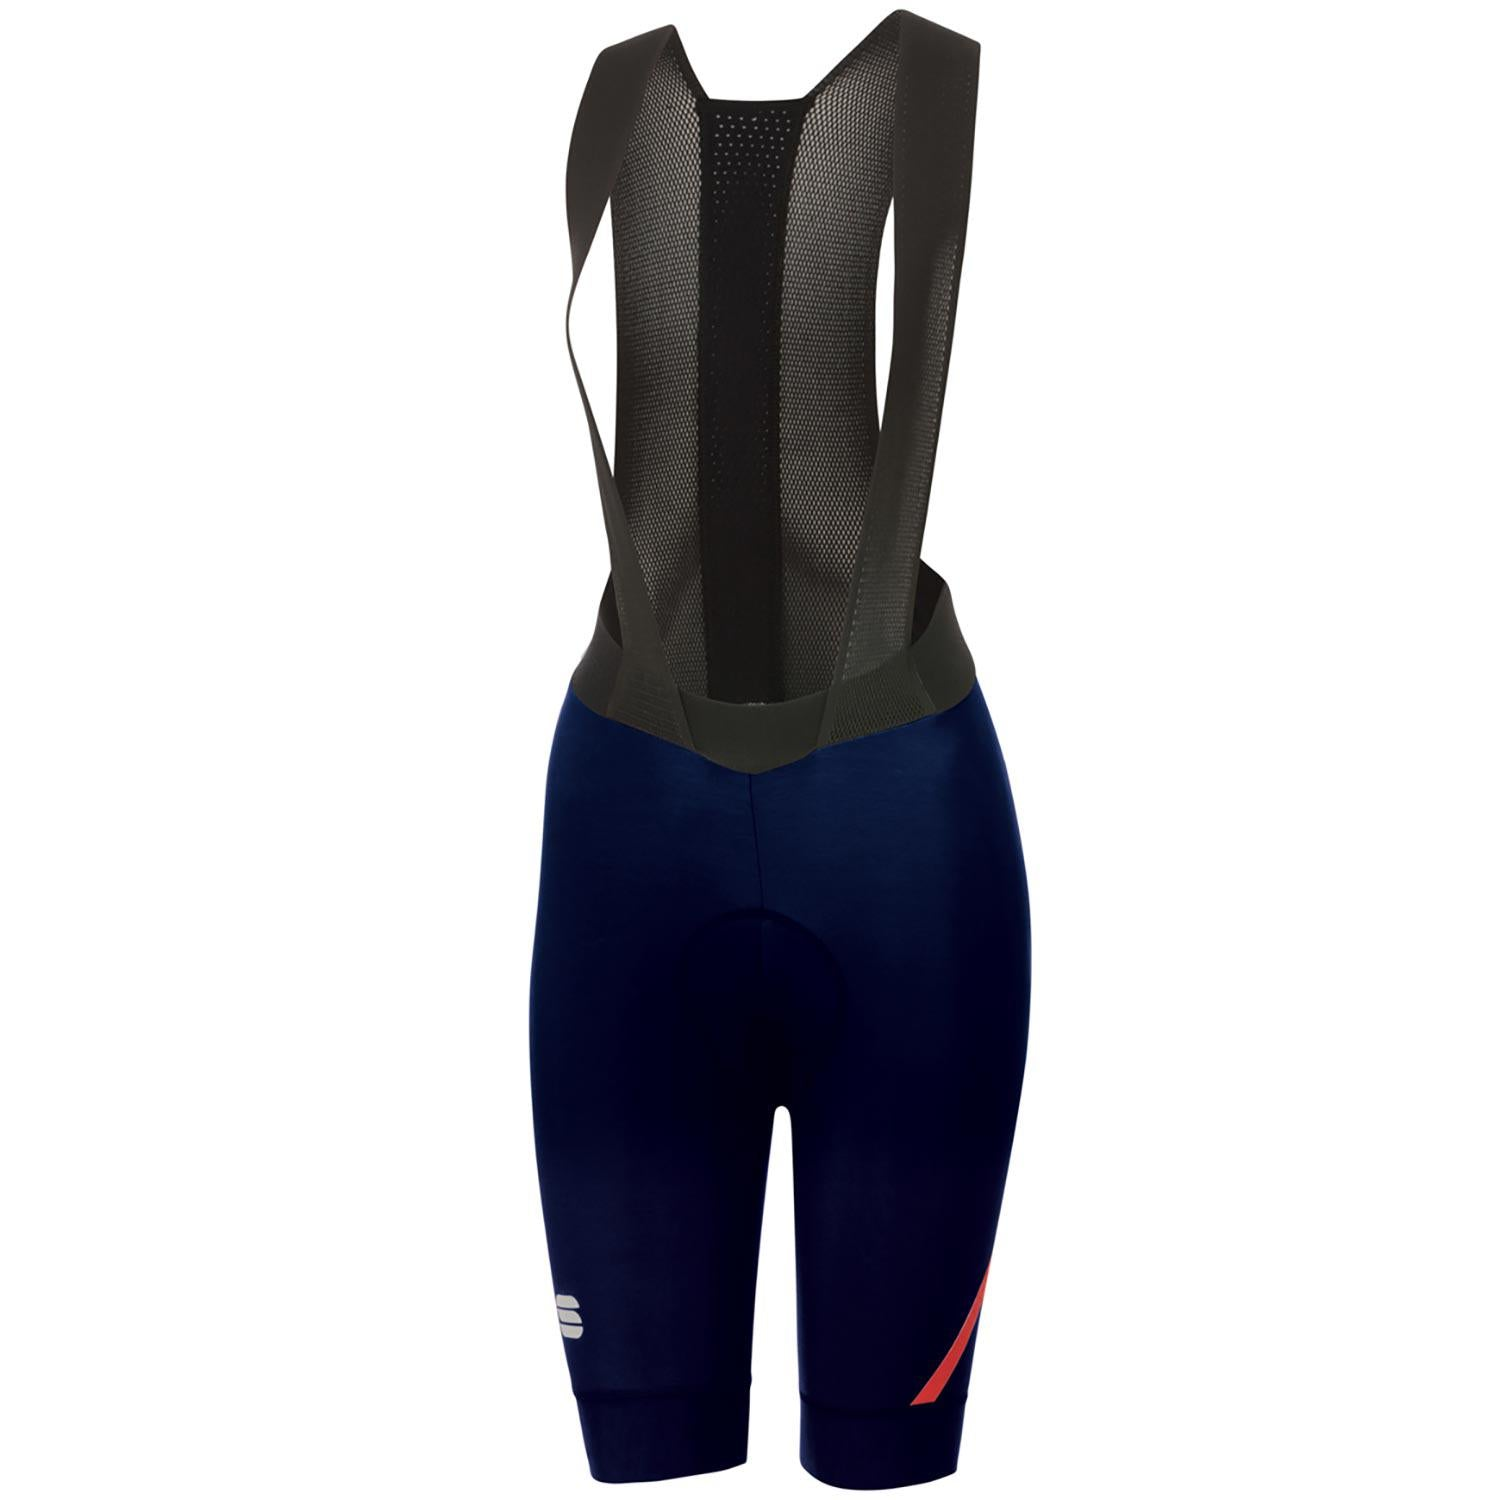 Sportful-Sportful Fiandre NoRain Women's Bib Shorts-Blue-XS-SF205200131-saddleback-elite-performance-cycling